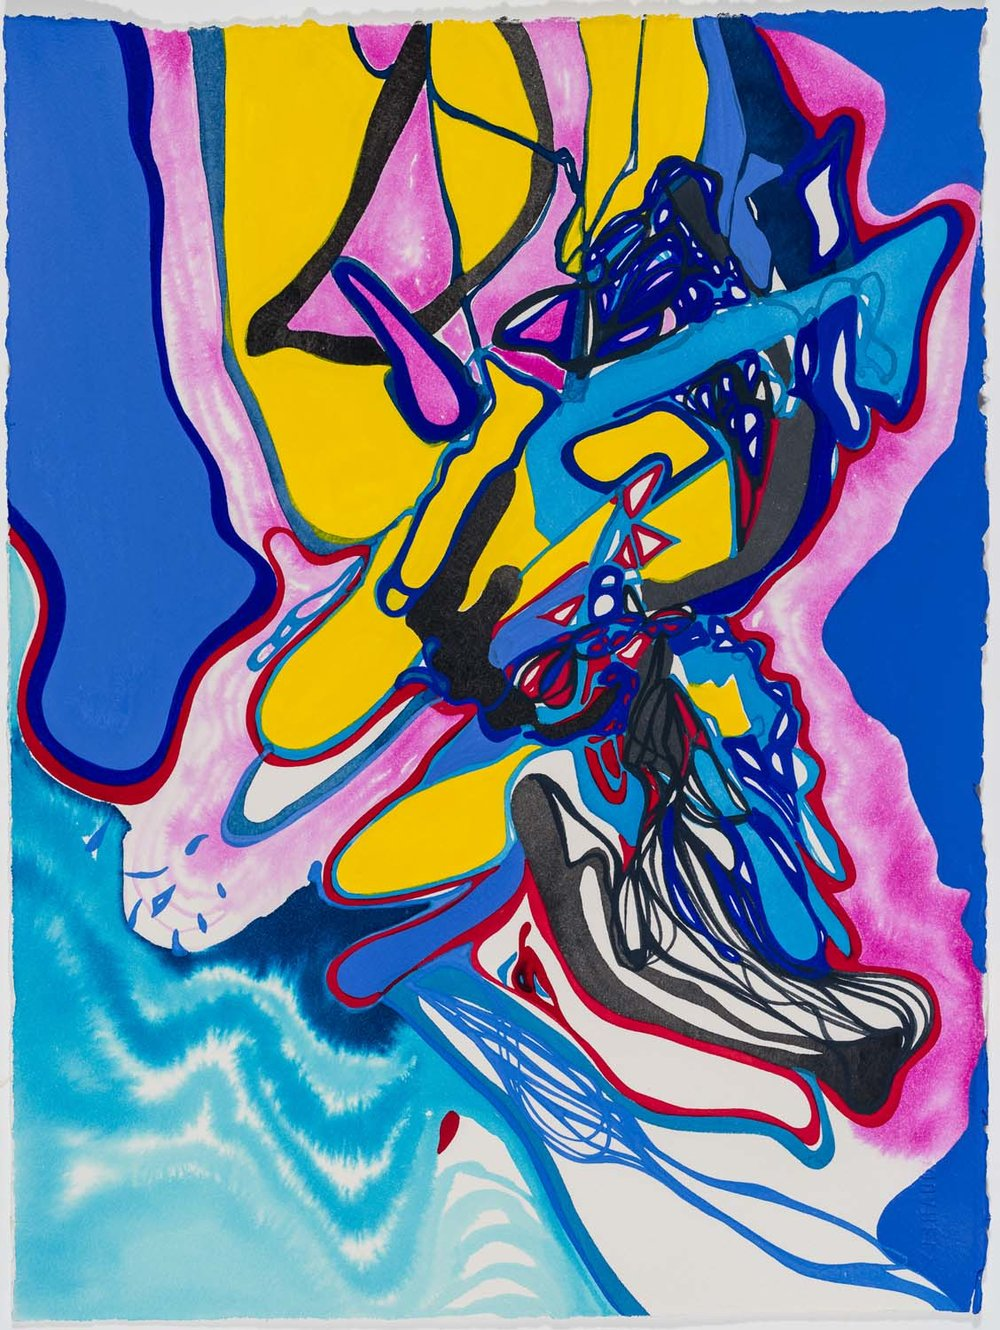 untitled ah, 2017 15 x 11 1/2 inches gouache on paper 100-133